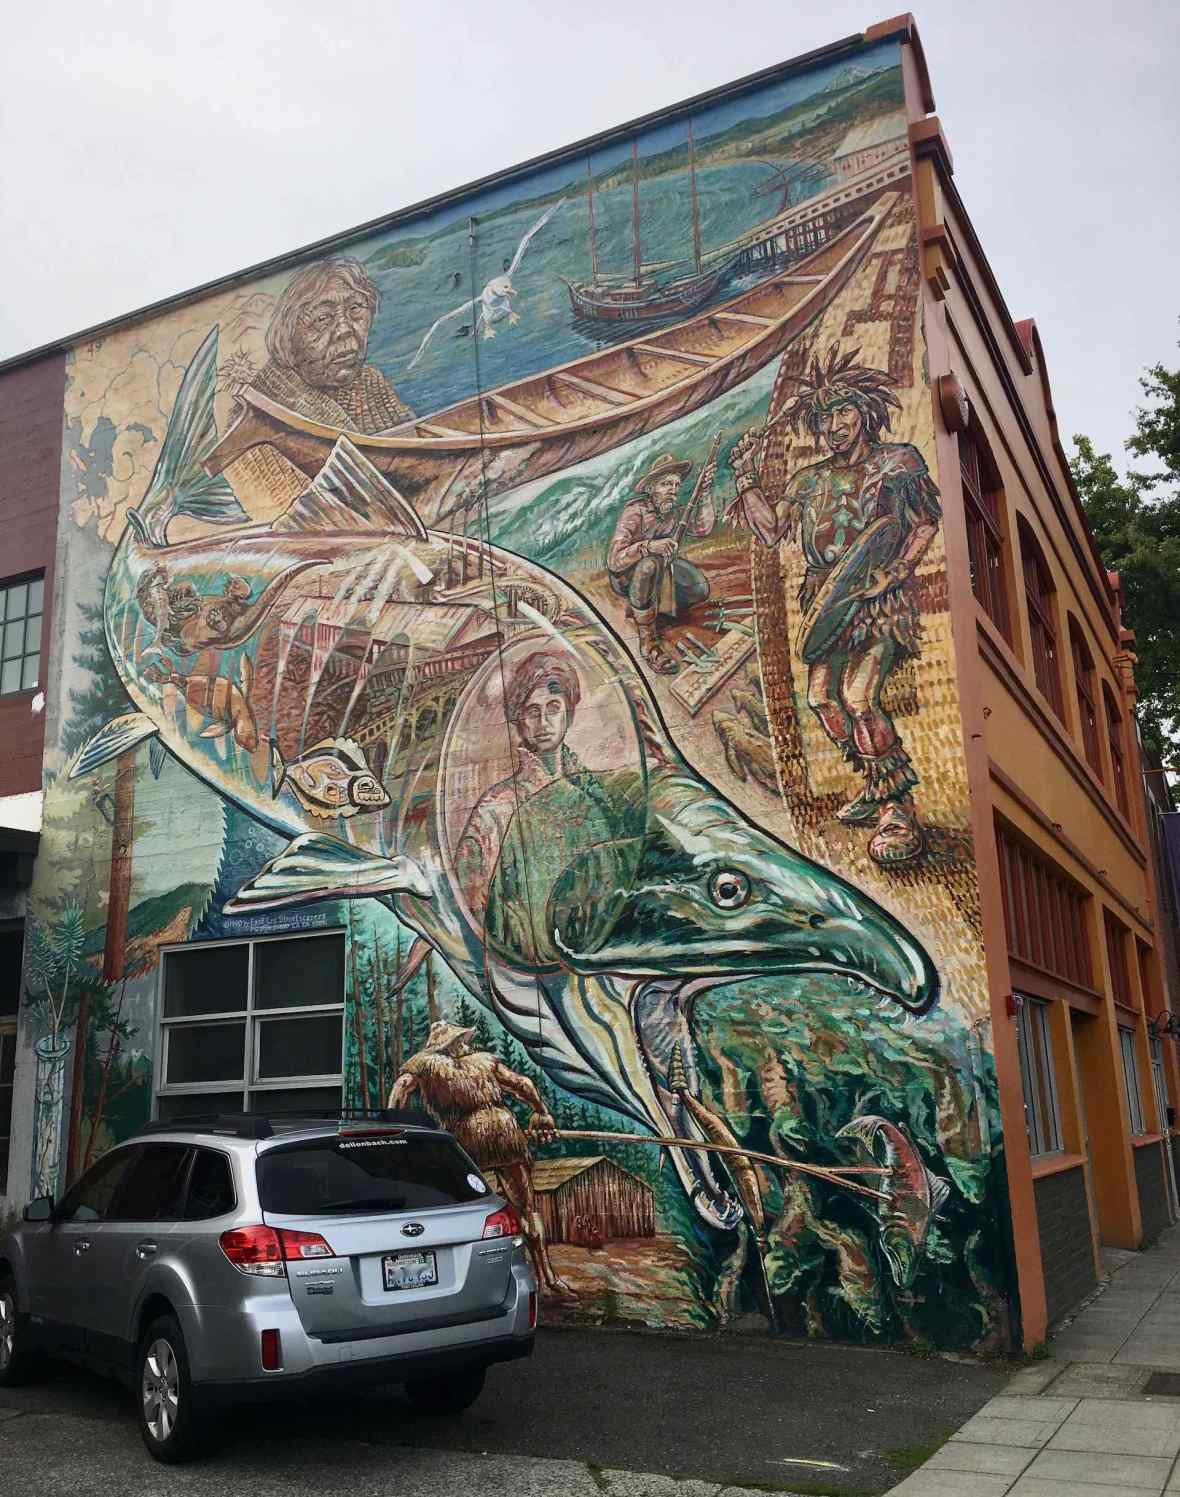 Awesome downtown Bellingham, Washington mural